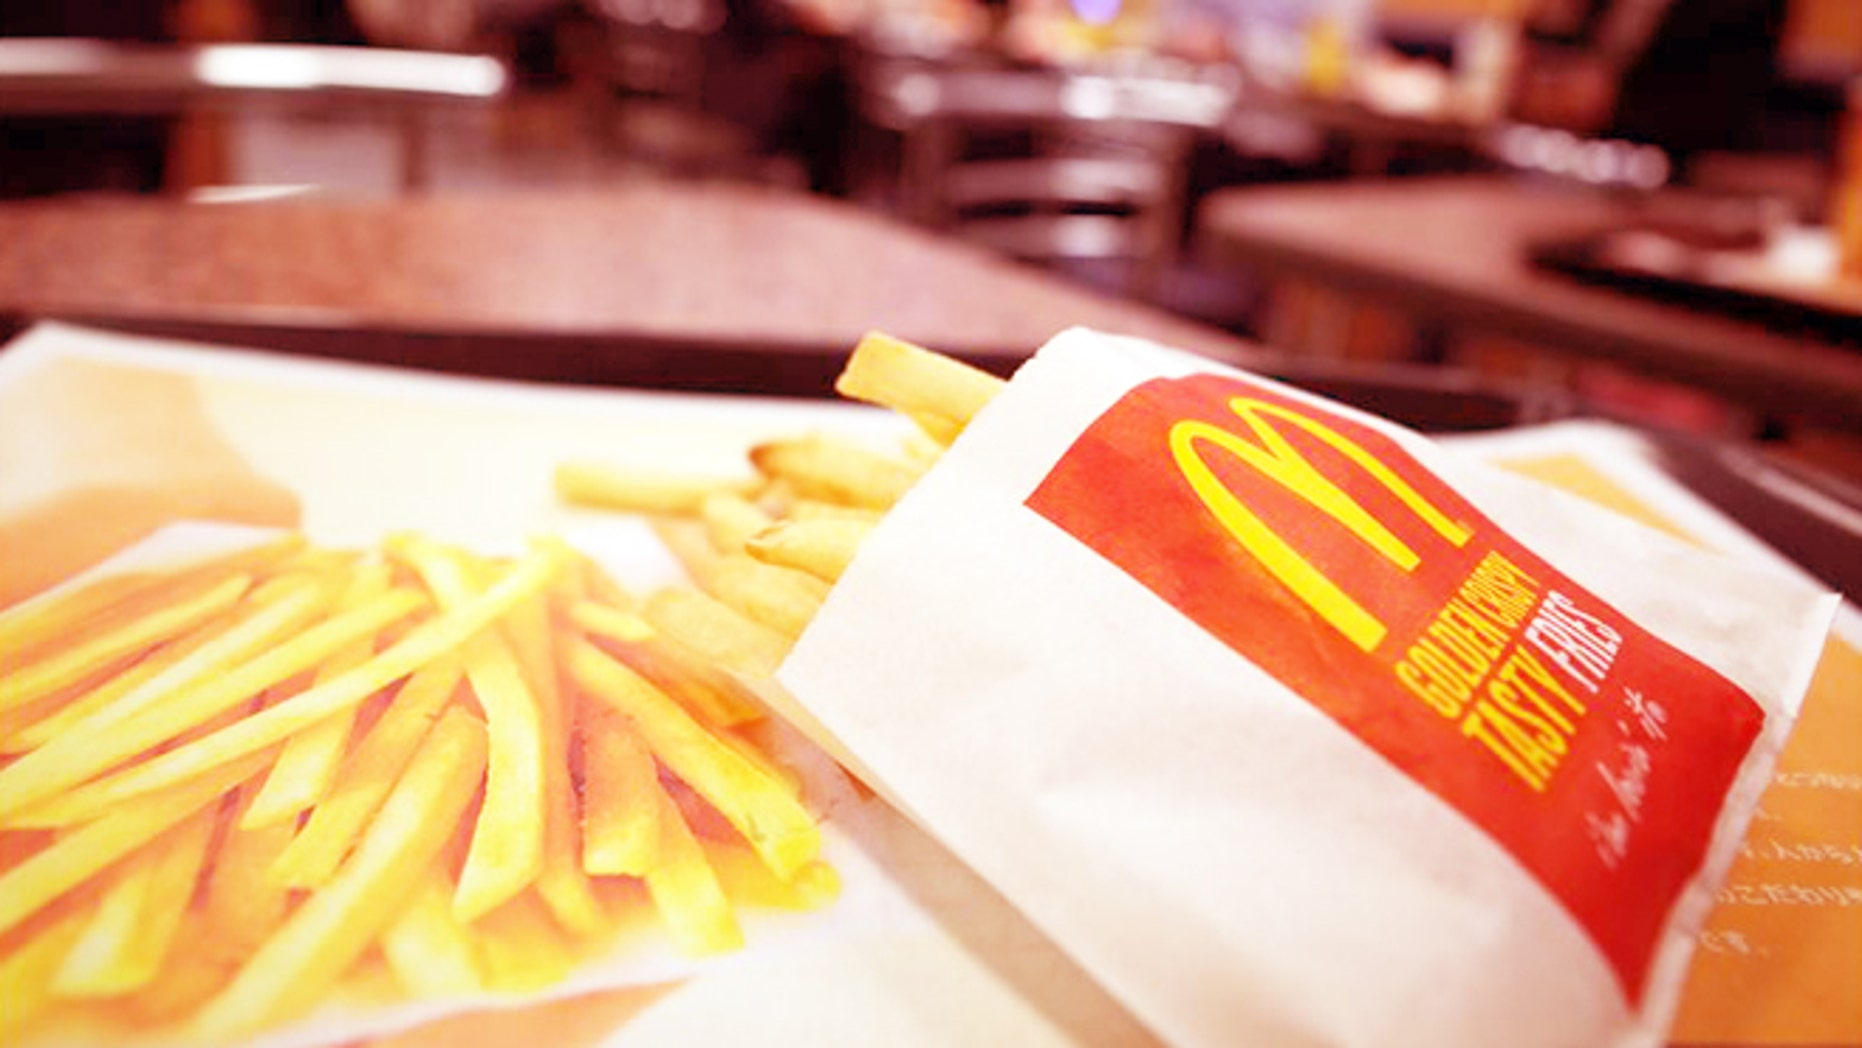 Is there anything better than a crispy, salty McDonald's fry?